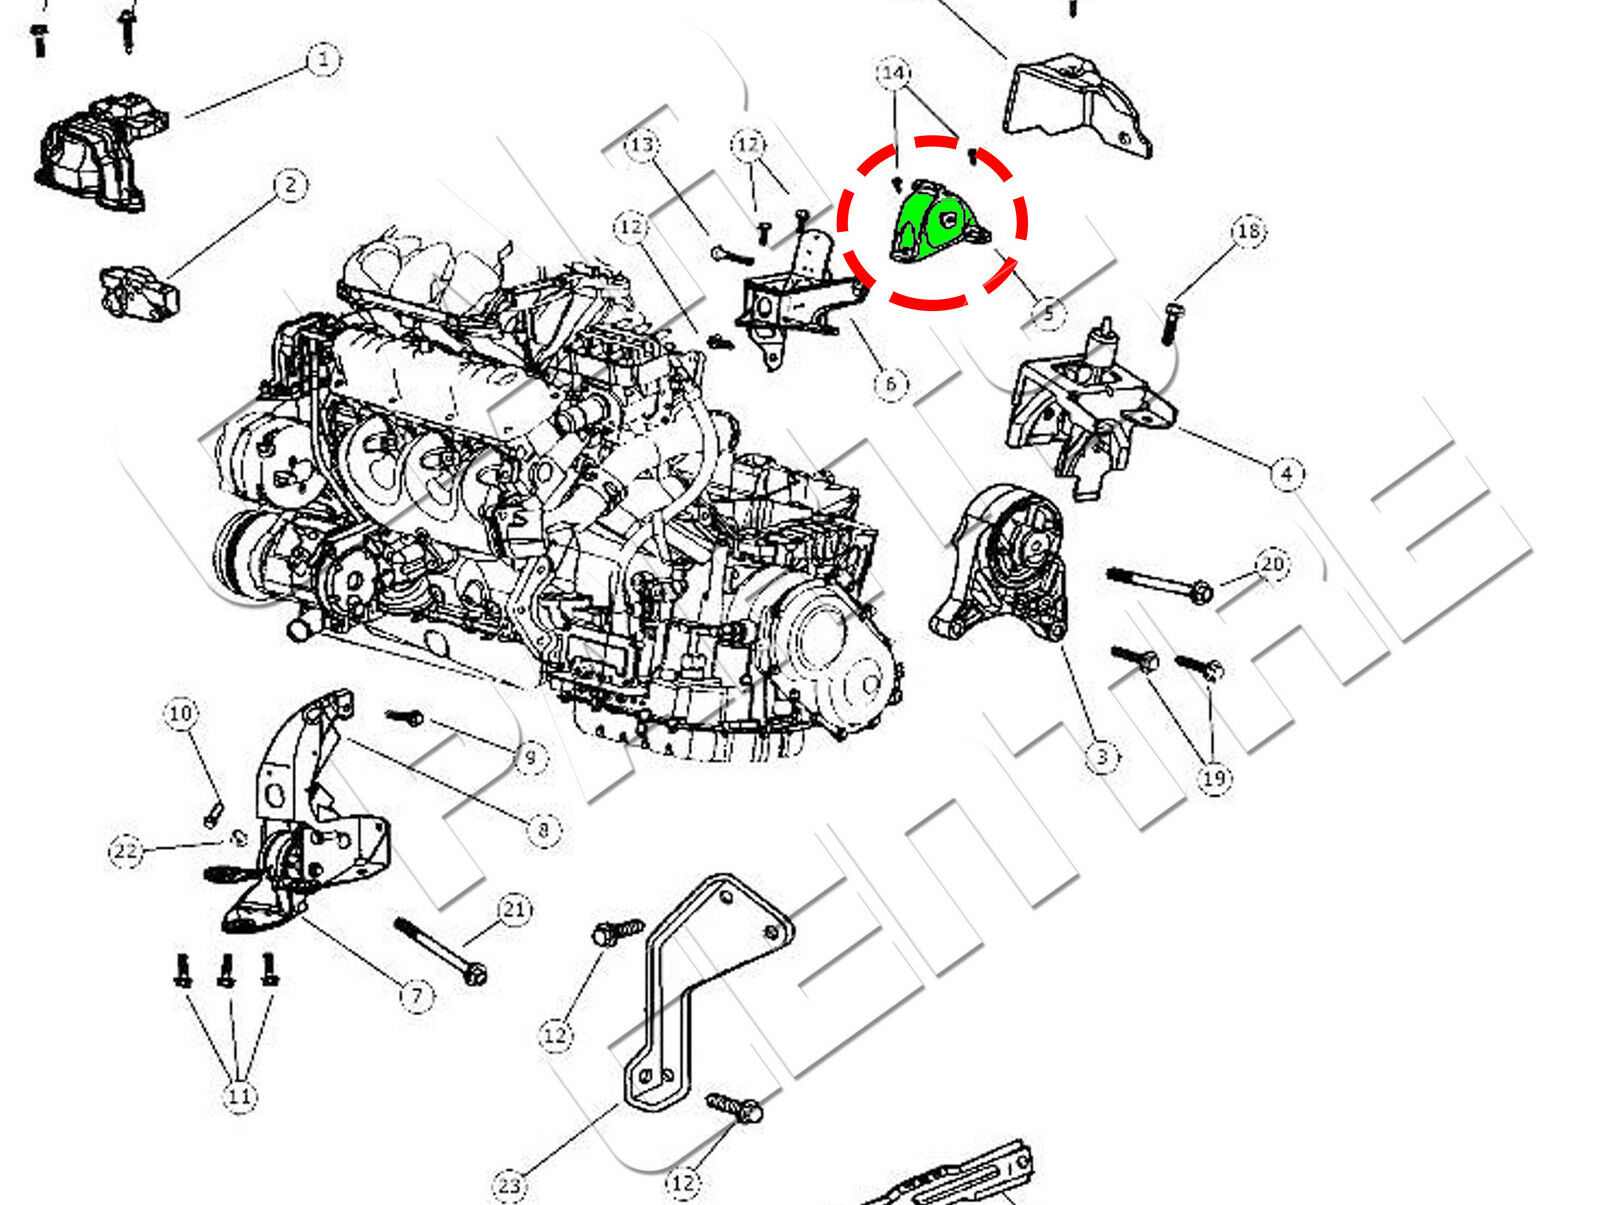 Chrysler 3 8 Litre Engine Diagram Wiring Diagram For Free